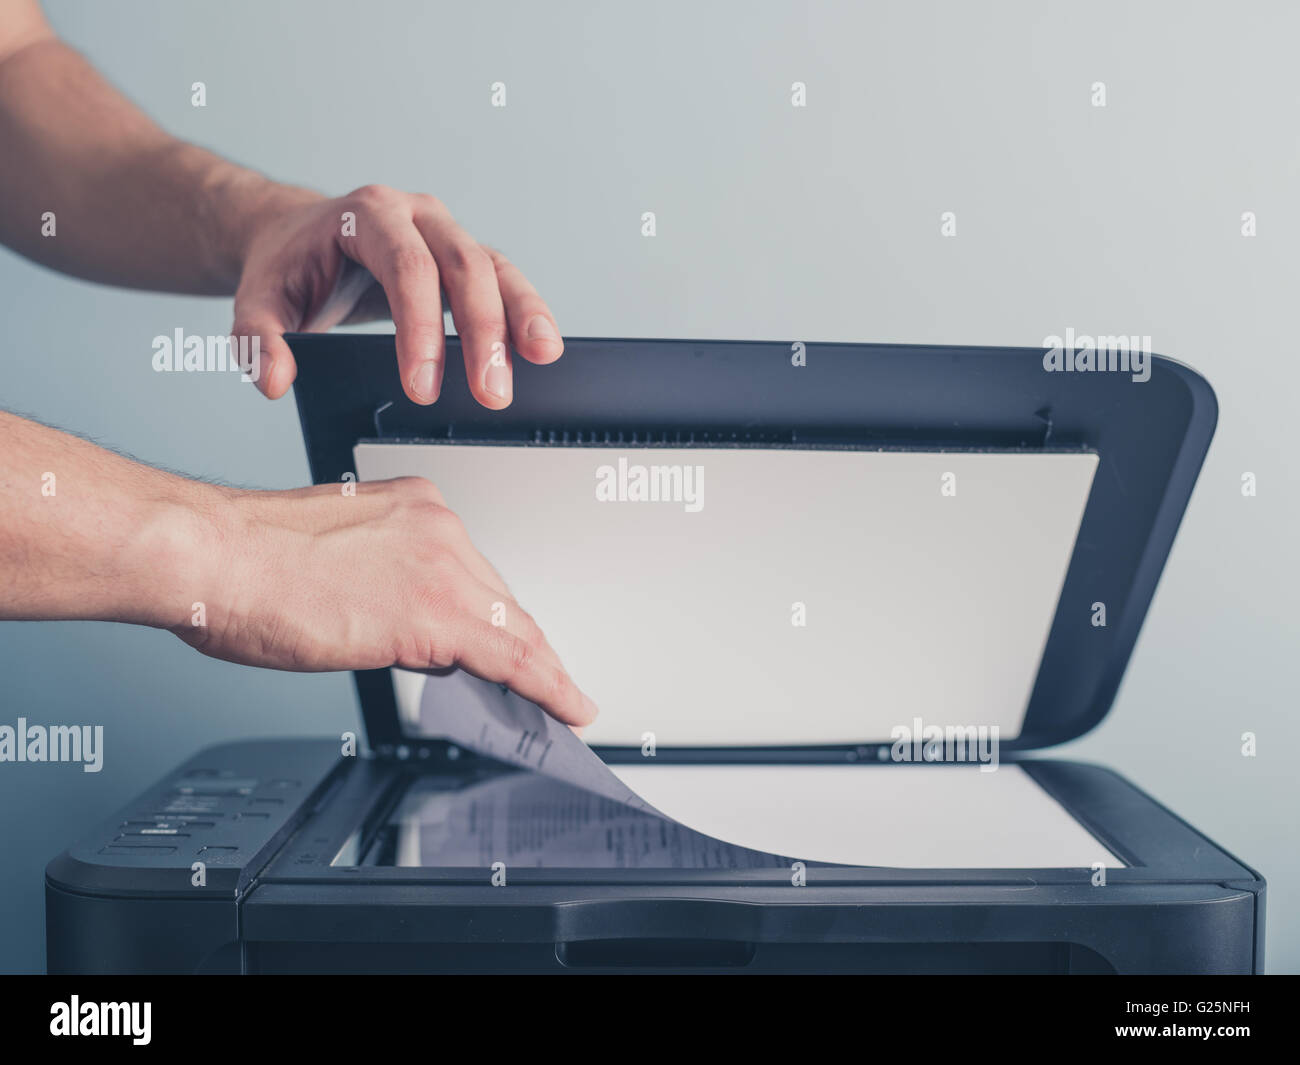 The hands of a young man is placing a piece of paper on a flatbed scanner in preparation for copying it - Stock Image